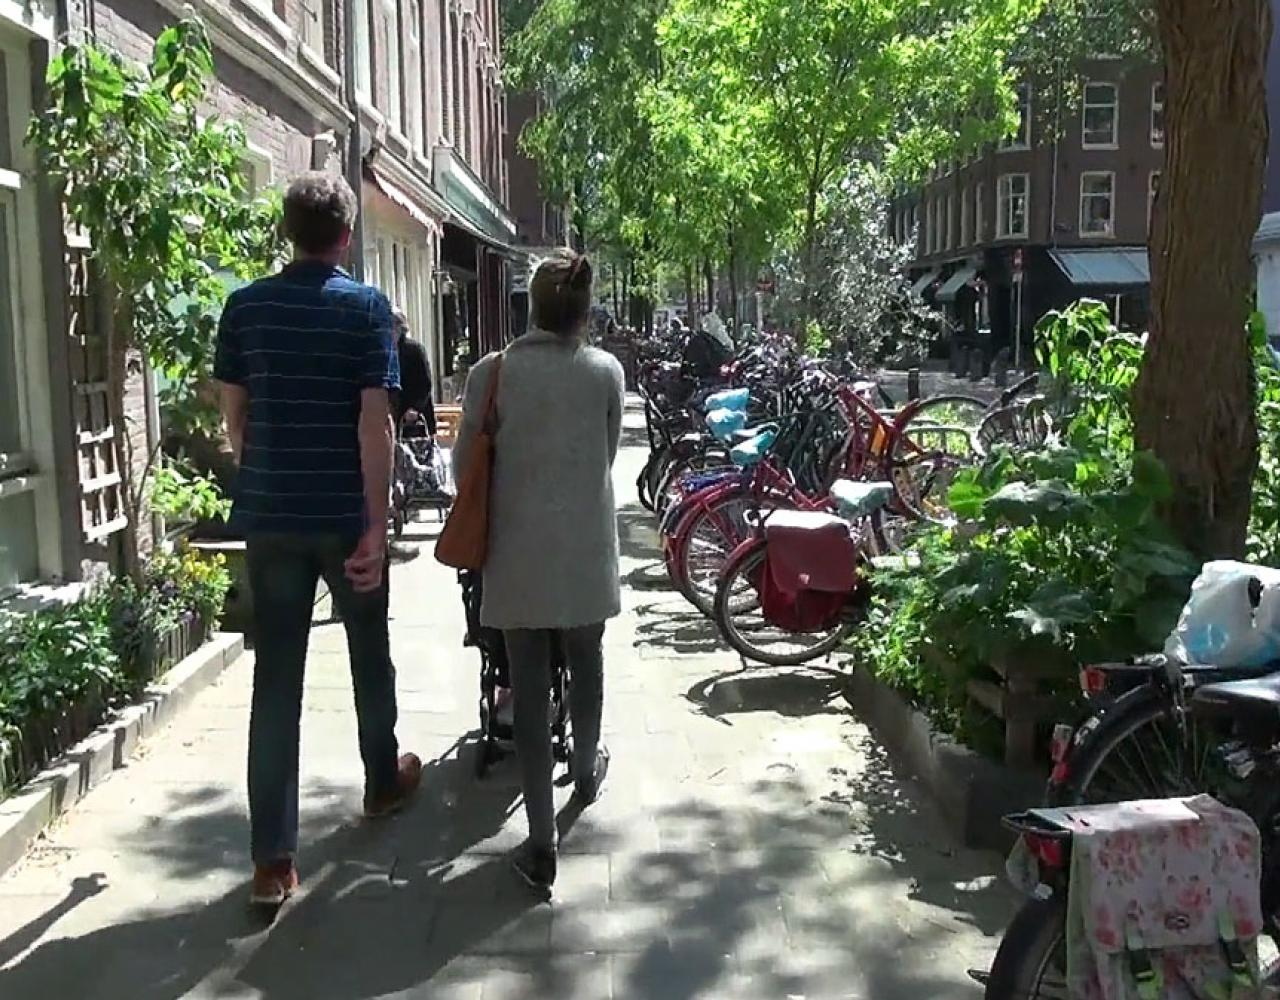 Amsterdam no parking